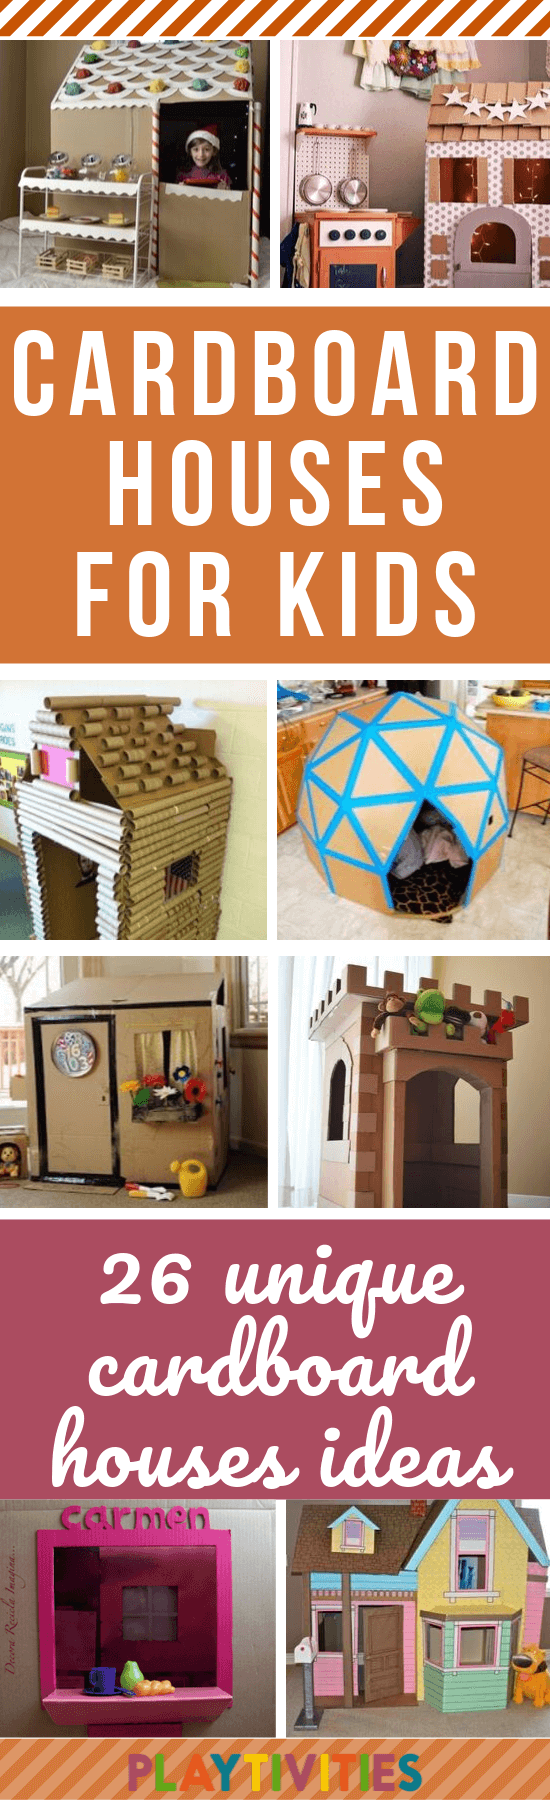 cardboard houses for kids